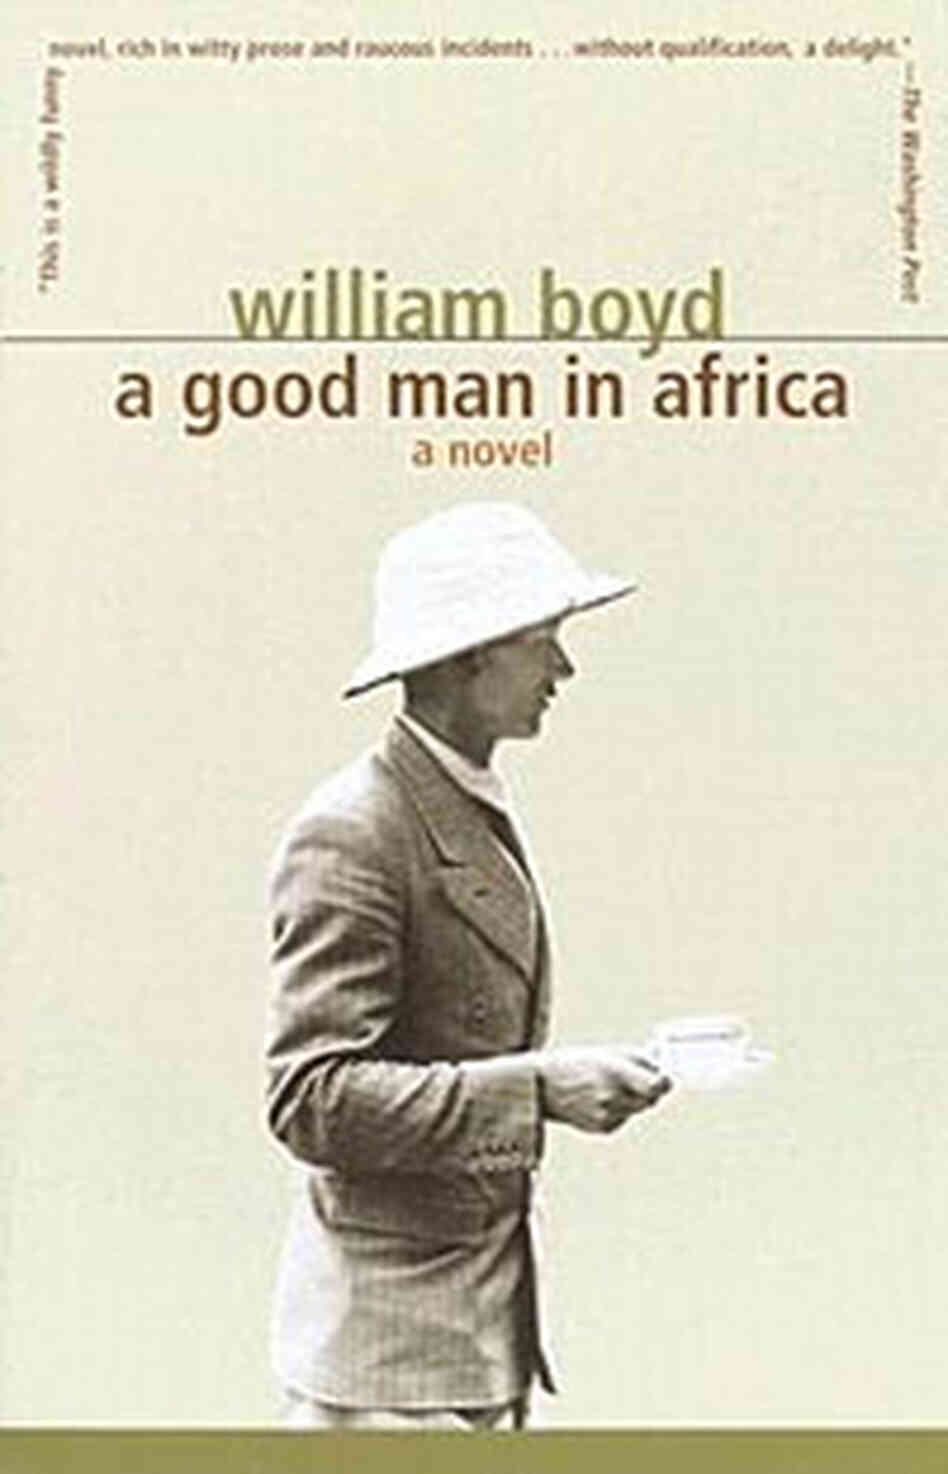 'A Good Man in Africa' book cover